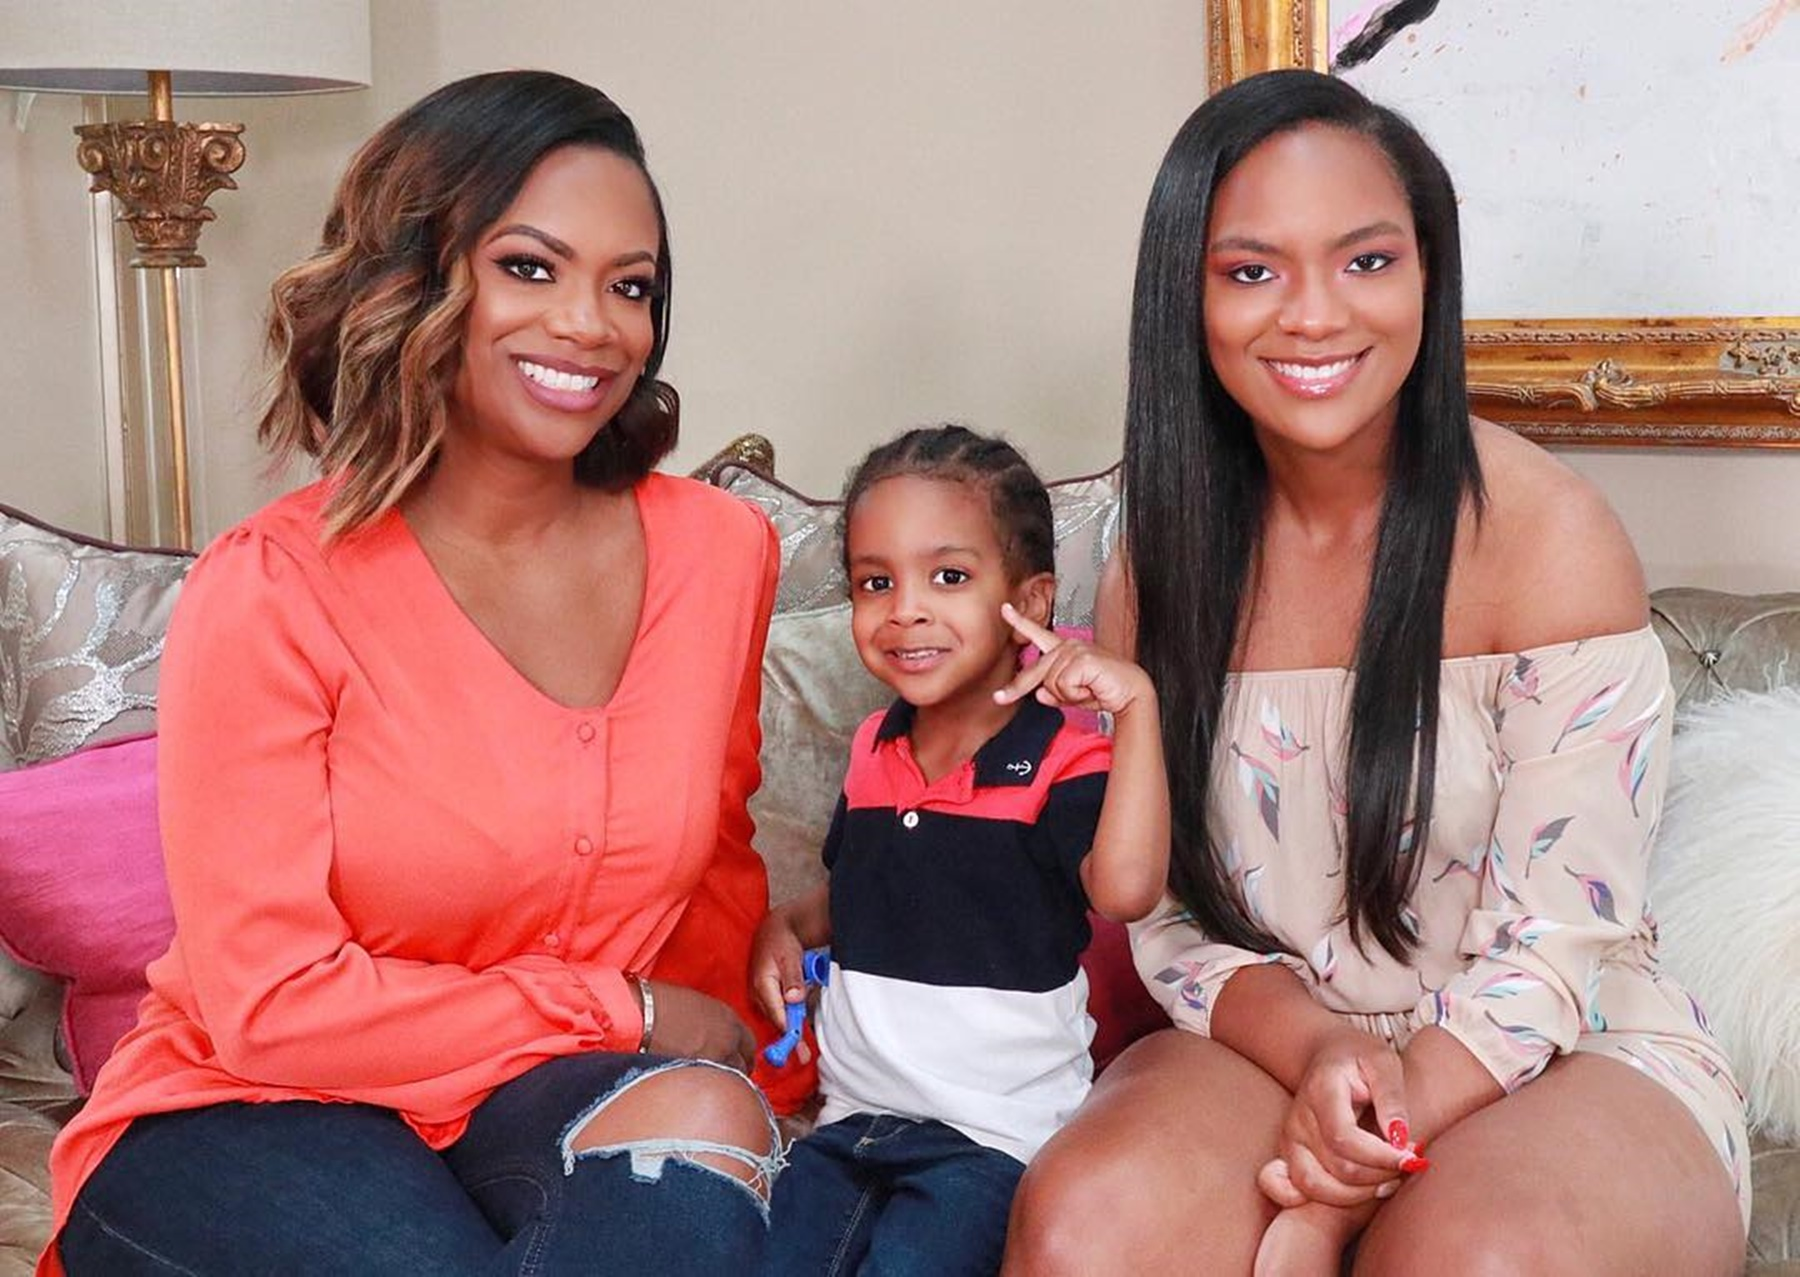 kandi-burruss-is-getting-mommy-shamed-after-sharing-picture-of-her-son-ace-tucker-with-long-hair-fans-of-the-xscape-singer-hit-back-at-critics